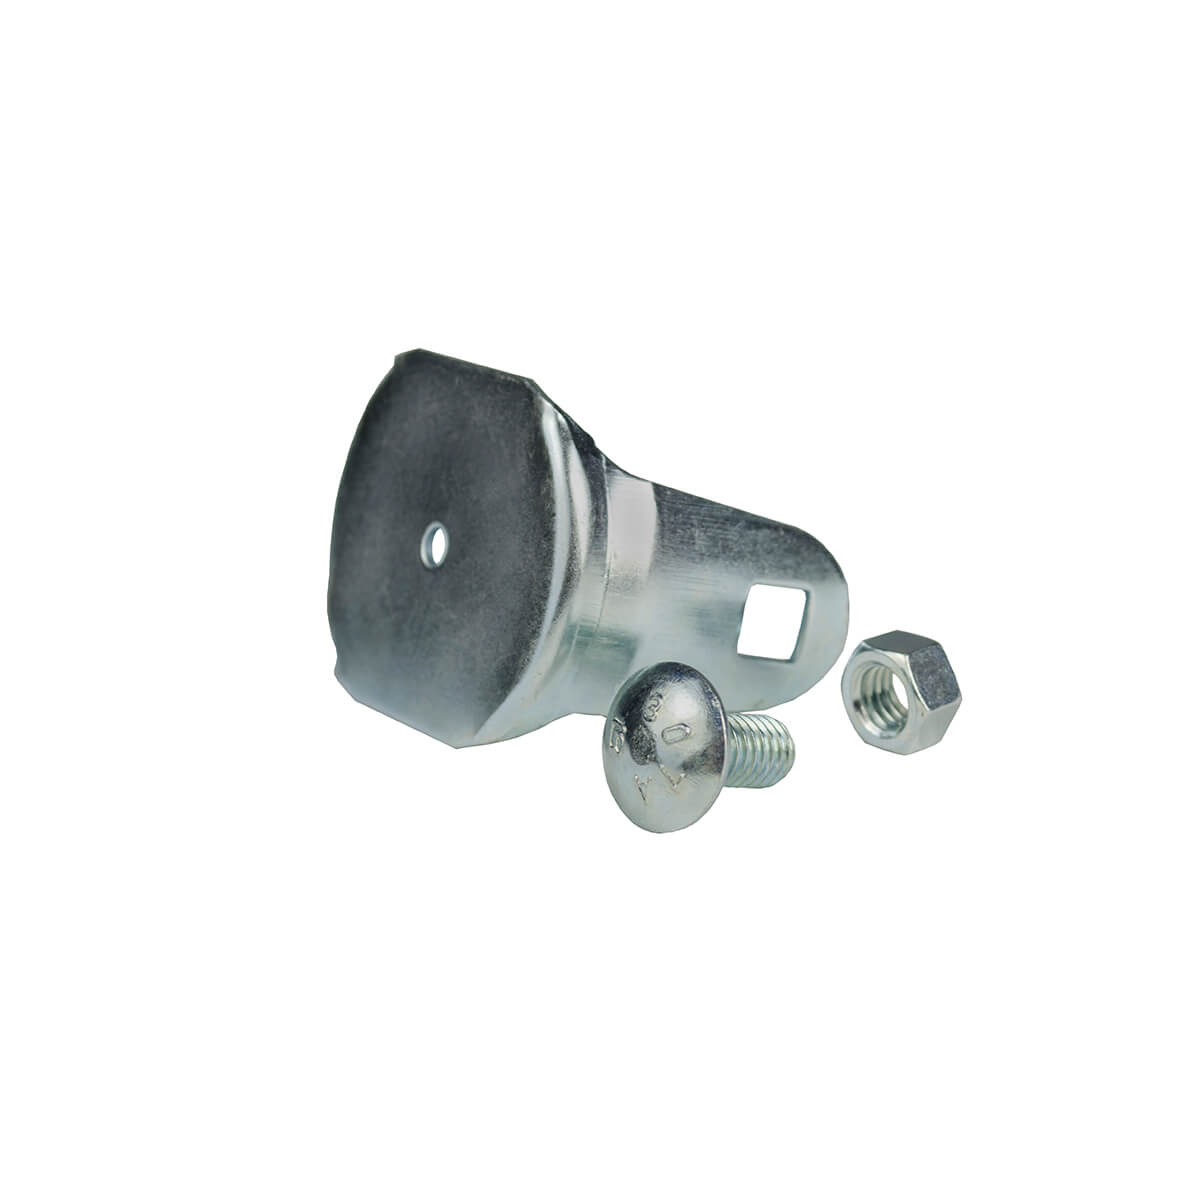 Cannonball Round Track End Cap